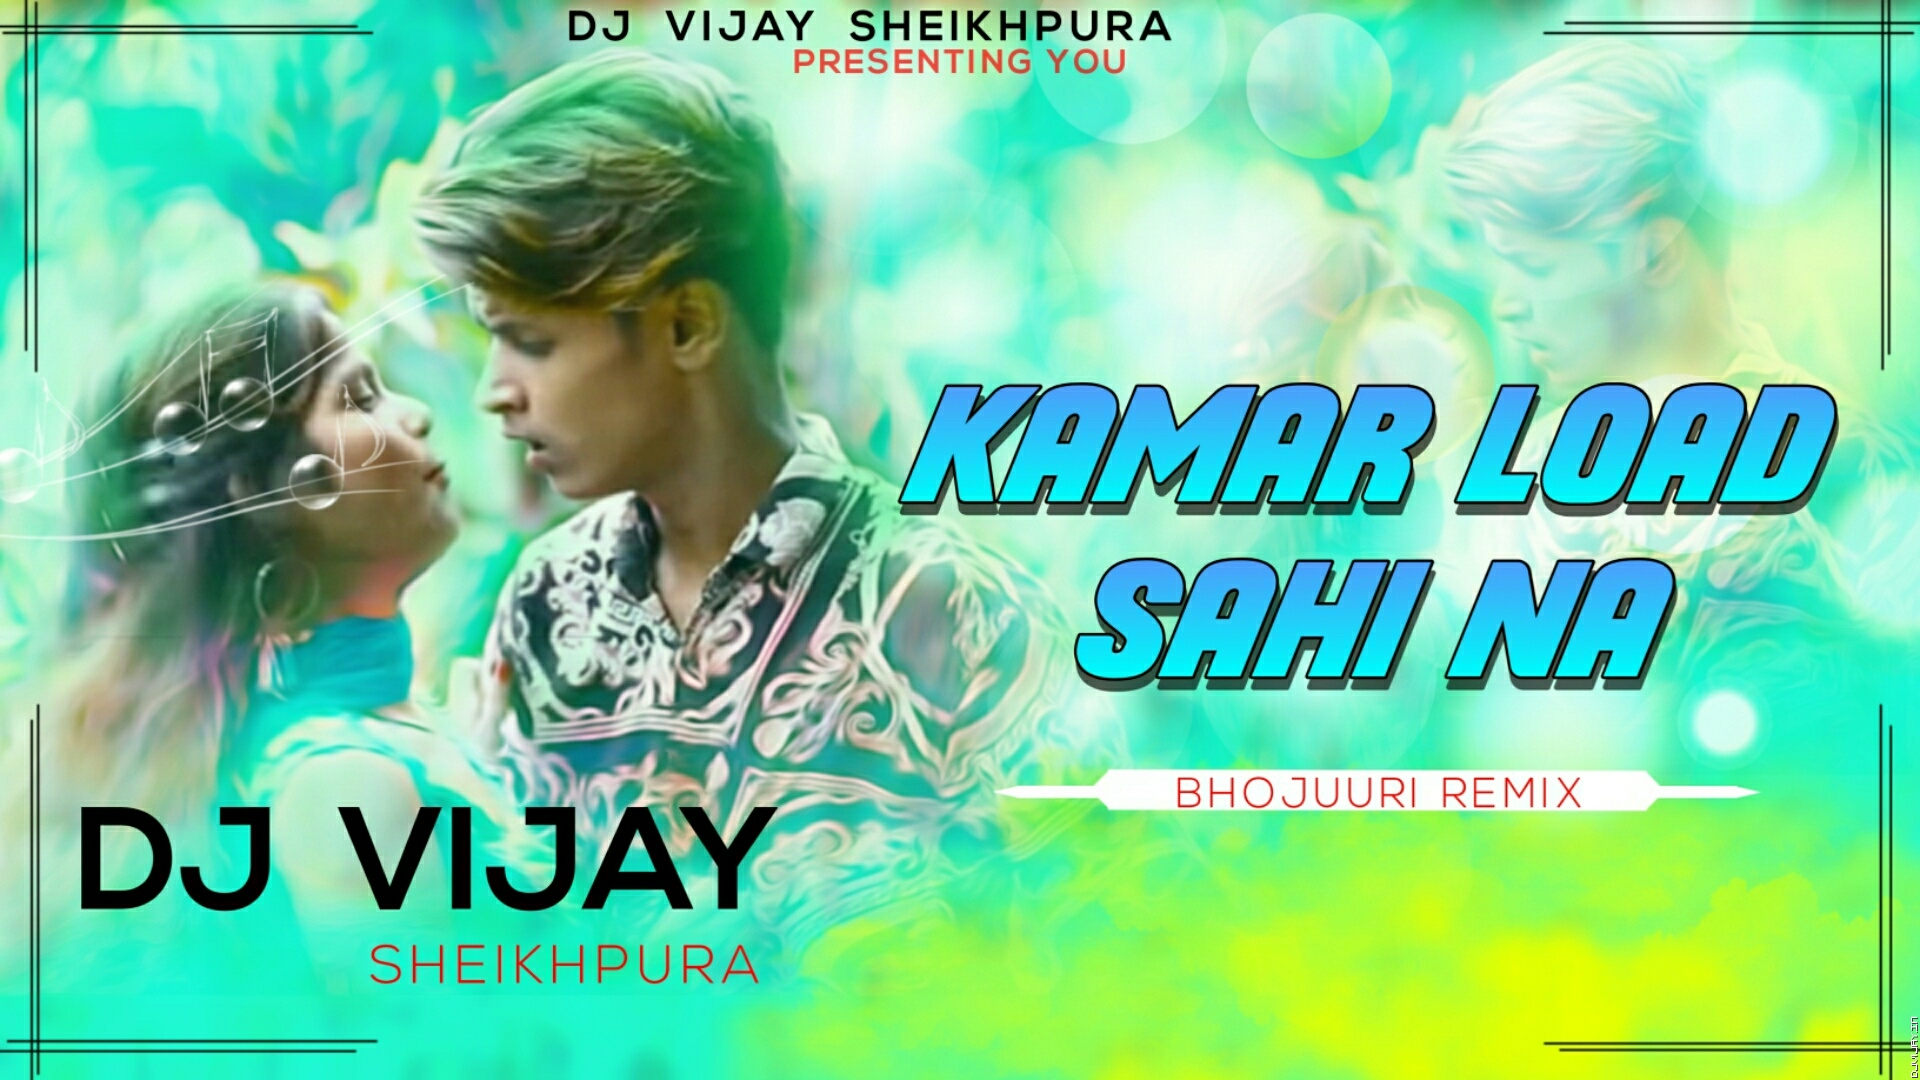 Kamar Loadh Sahi Na Bhojpuri Dj Remix By Dj Vijay.mp3